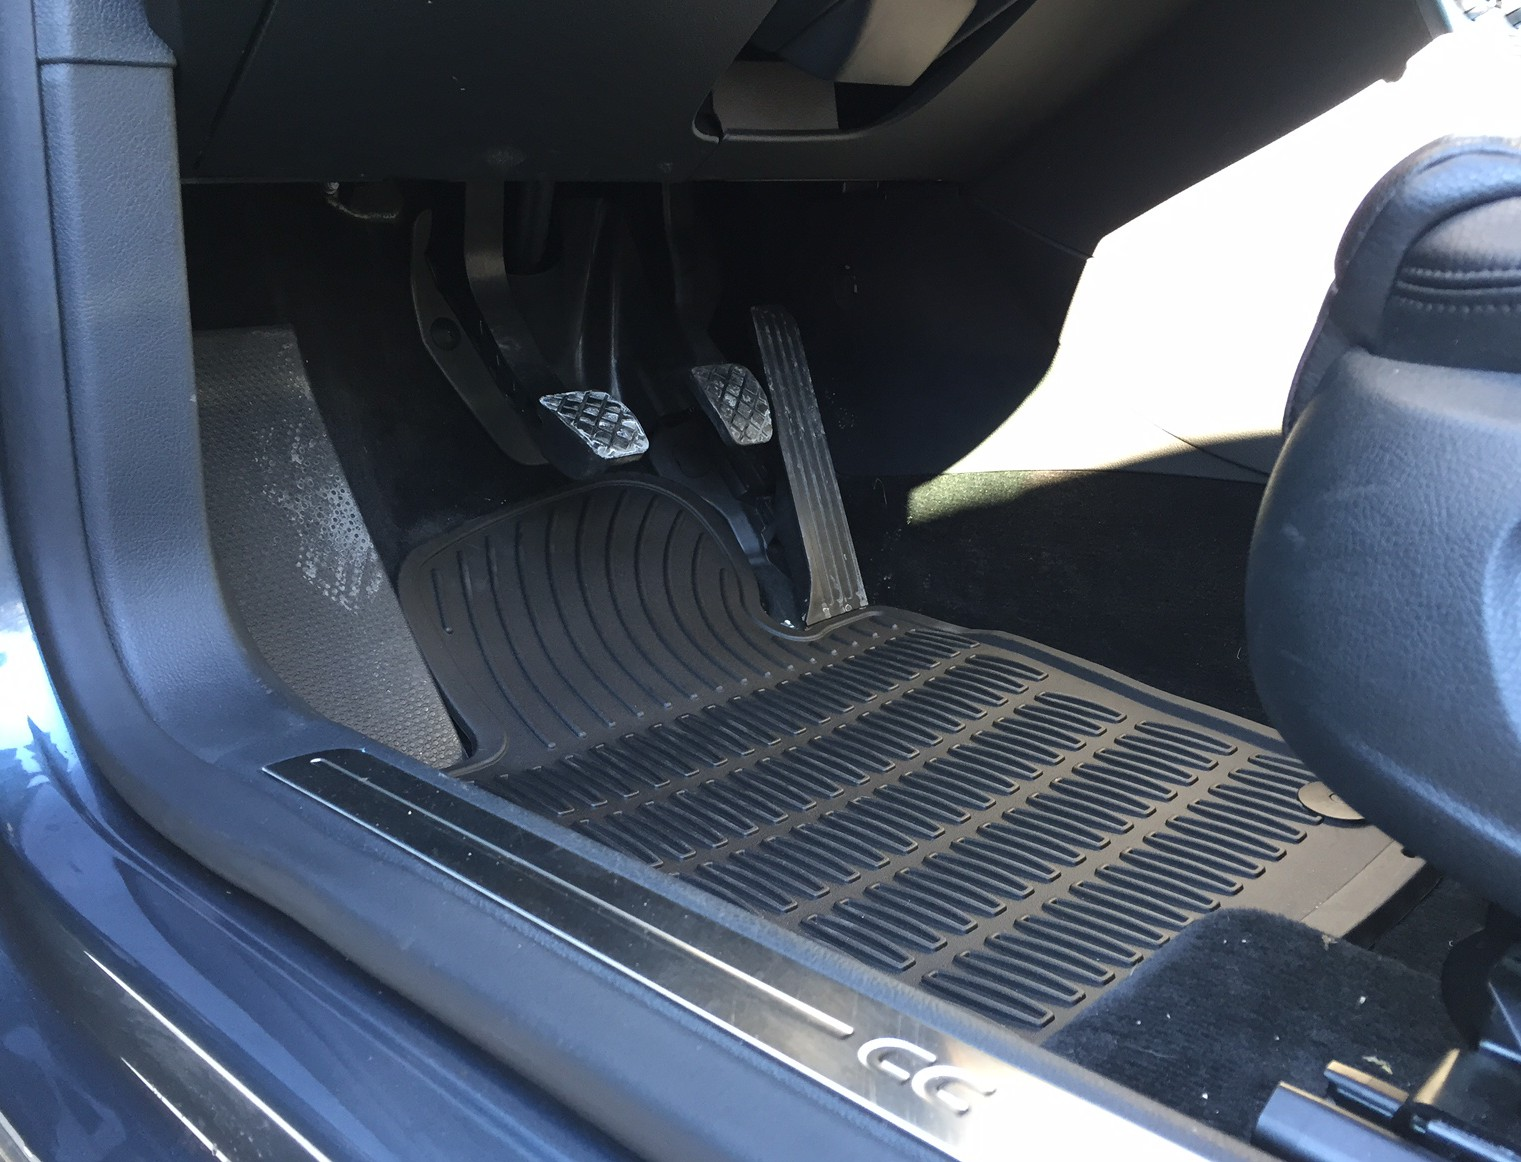 Car interior maintenance - Interior Maintenance Is Important Too Ever See A Used Car With Hardened Salt In The Carpet Believe It Or Not Most People Get In Their Car Without